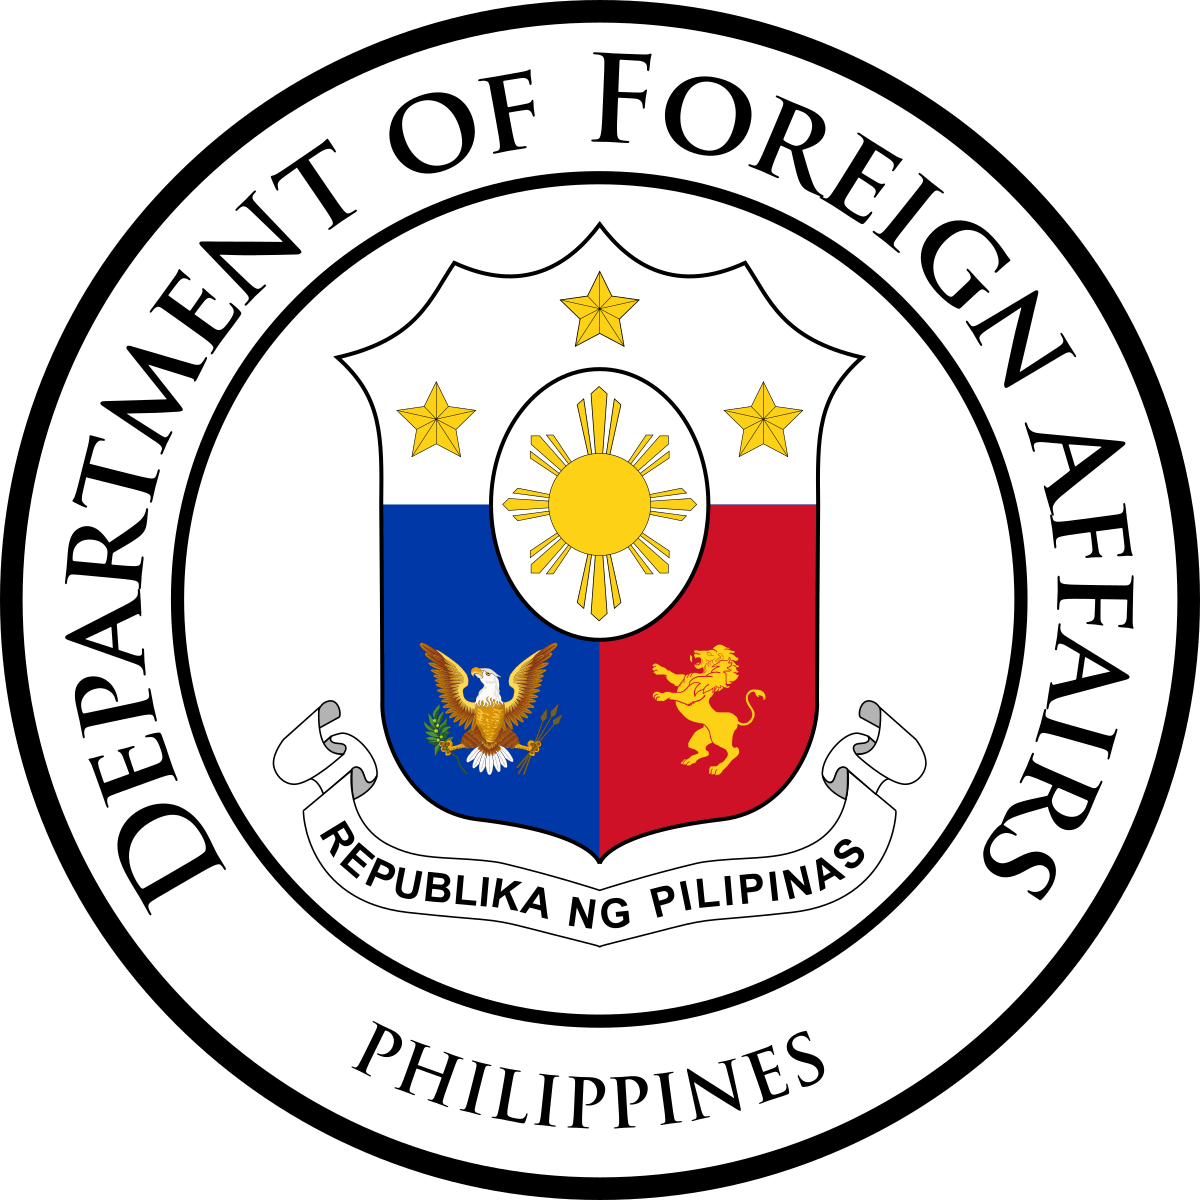 NGA - Department of Foreign Affairs